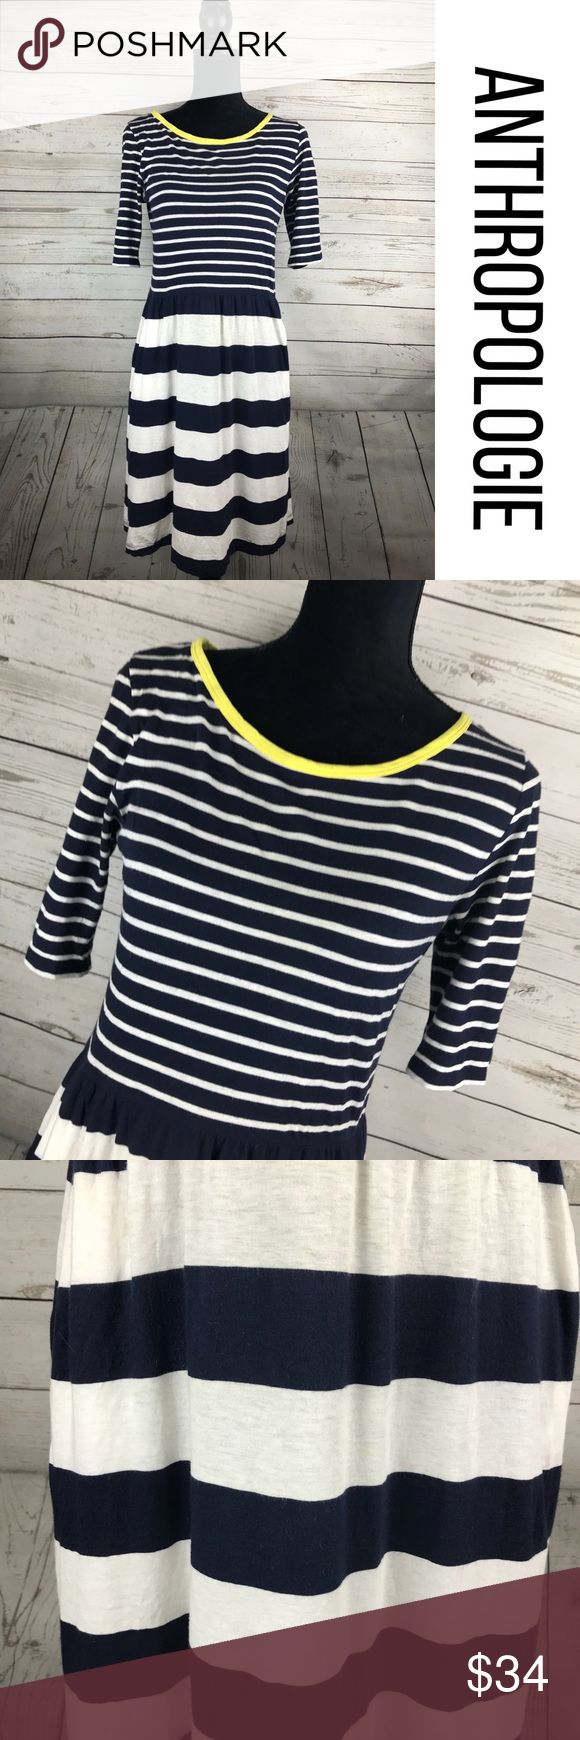 """Anthropologie Saturday Sunday Striped Navy Dress M Anthropologie Saturday Sunday Navy Blue Striped dress. Fitted elastic waist with a slight flare. Pockets. Lightweight, yellow trim. Gently used condition, tiny mark on the front -not very noticable,pictured.  Size M. Approximate measurements lying flat: Chest: 17"""" Length: 36"""" B1 Anthropologie Dresses"""